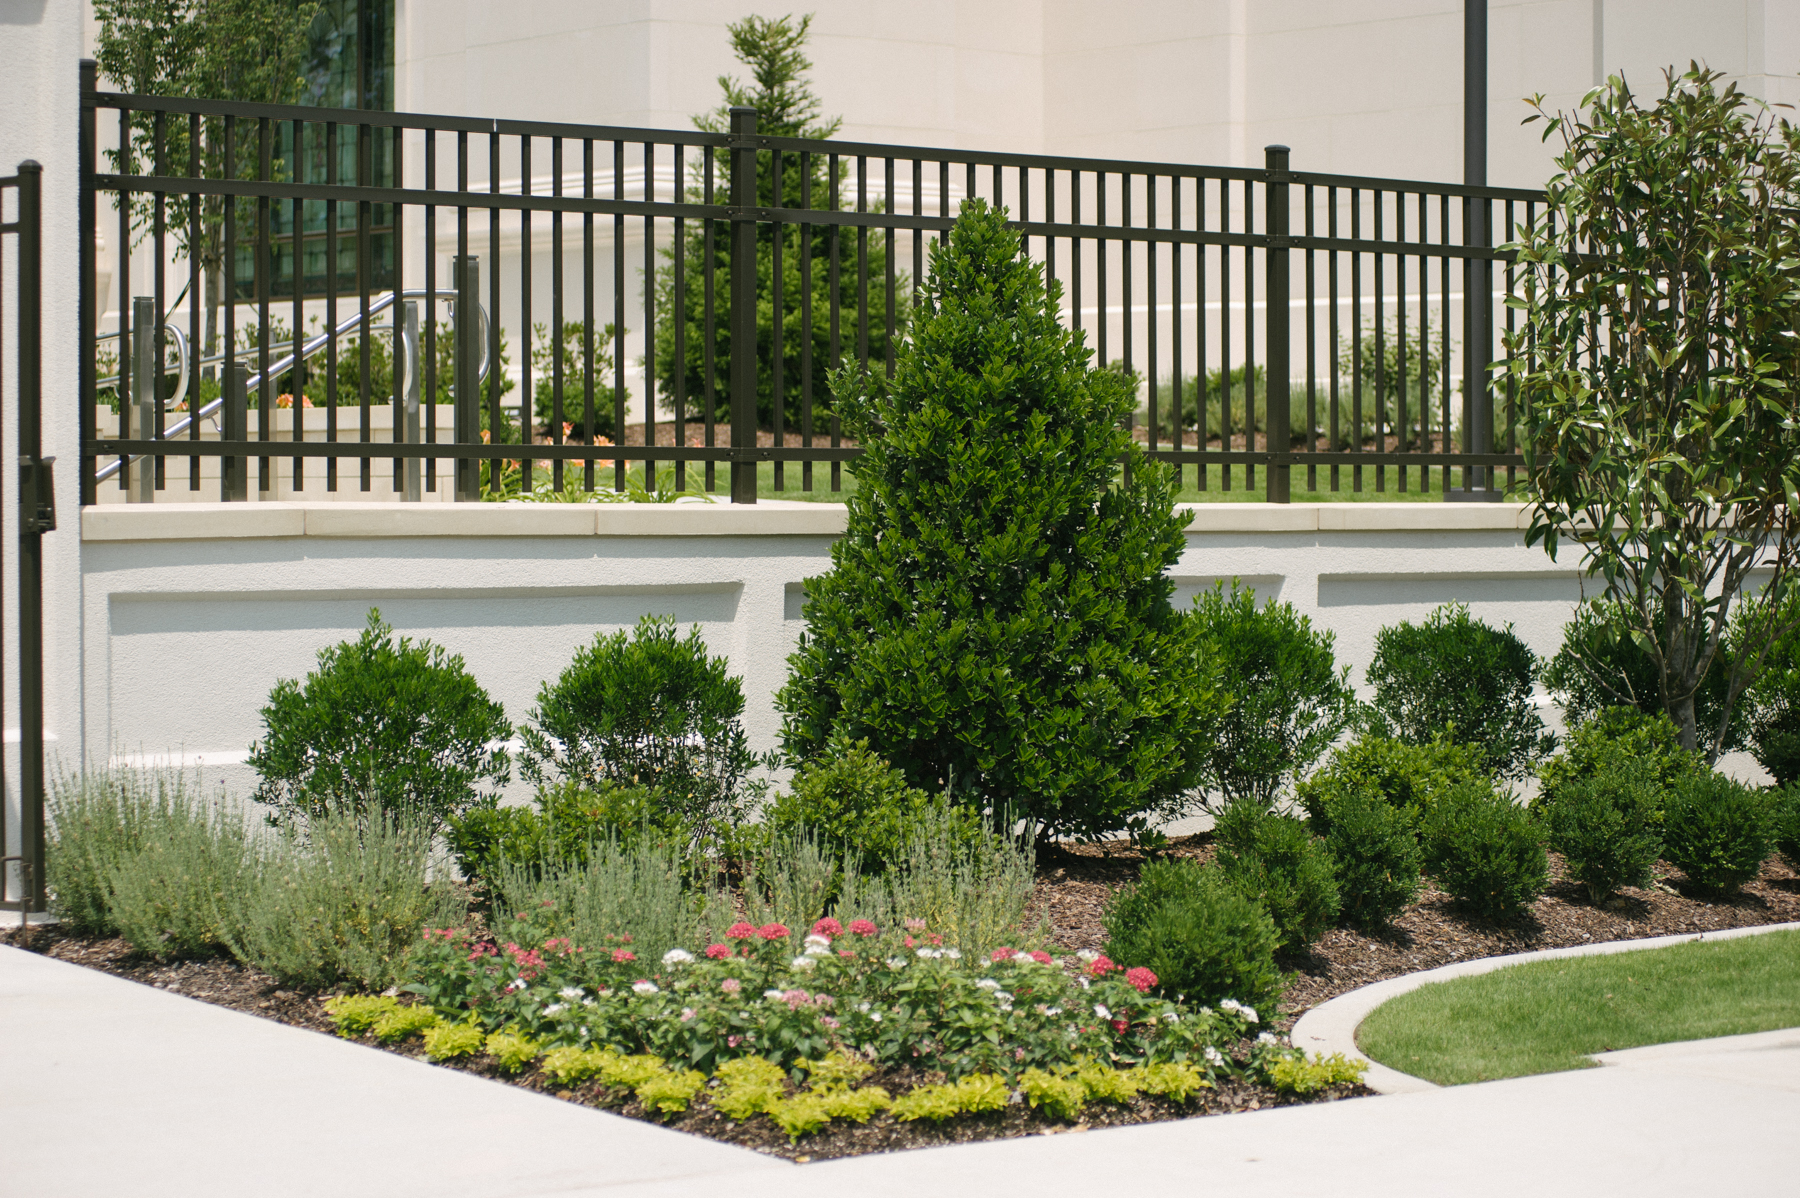 commercial landscaping walkway with plantings and shrubs